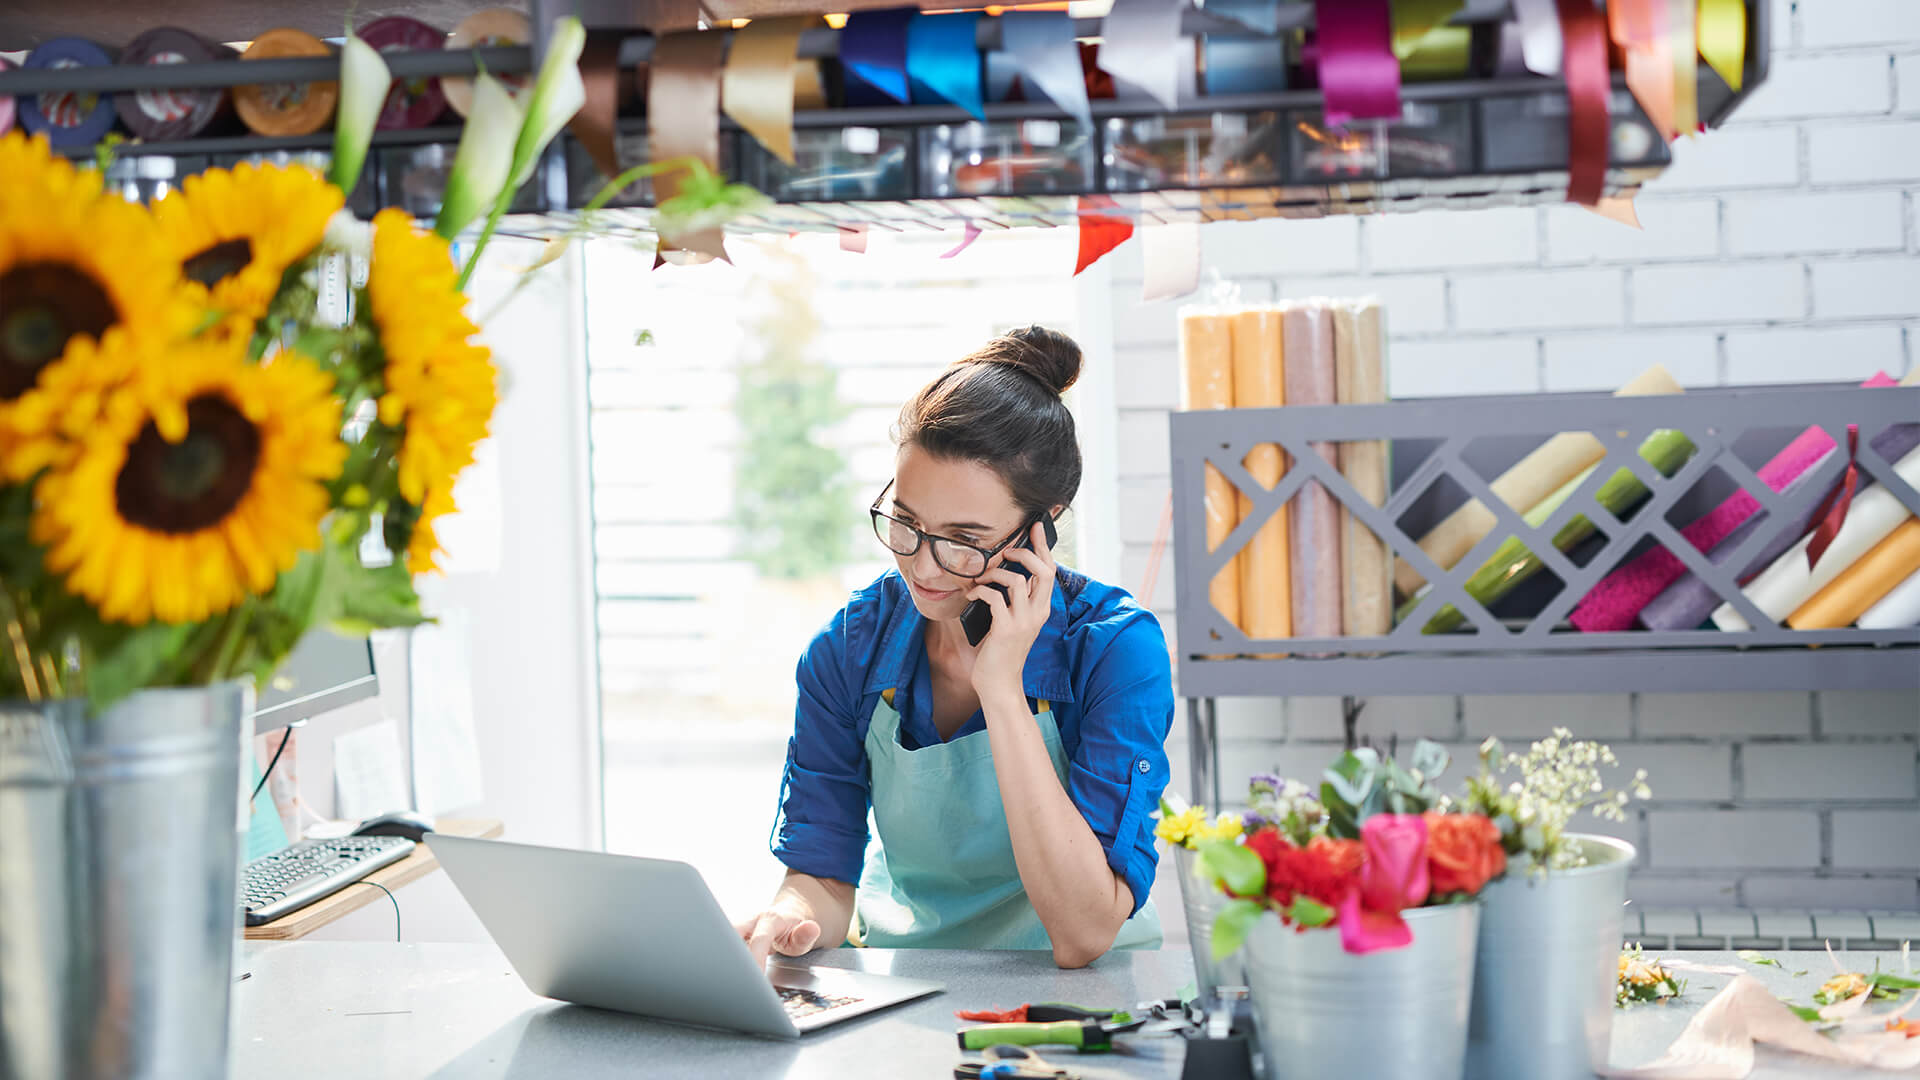 Woman doing business from her laptop in shop